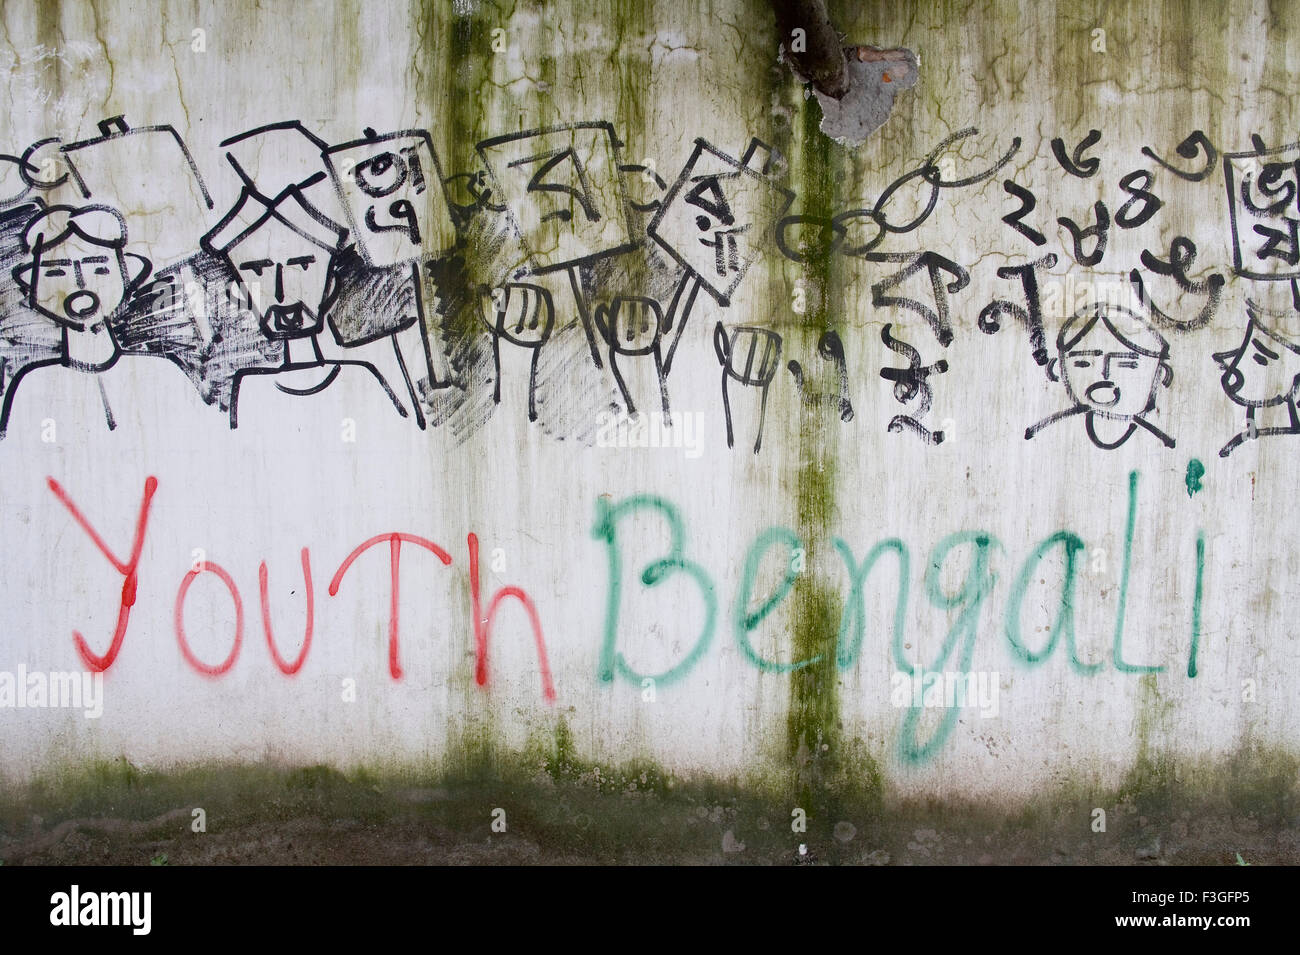 Youth Bengali' written on the wall with drawings of political demonstration ; Dhaka ; Bangladesh - Stock Image